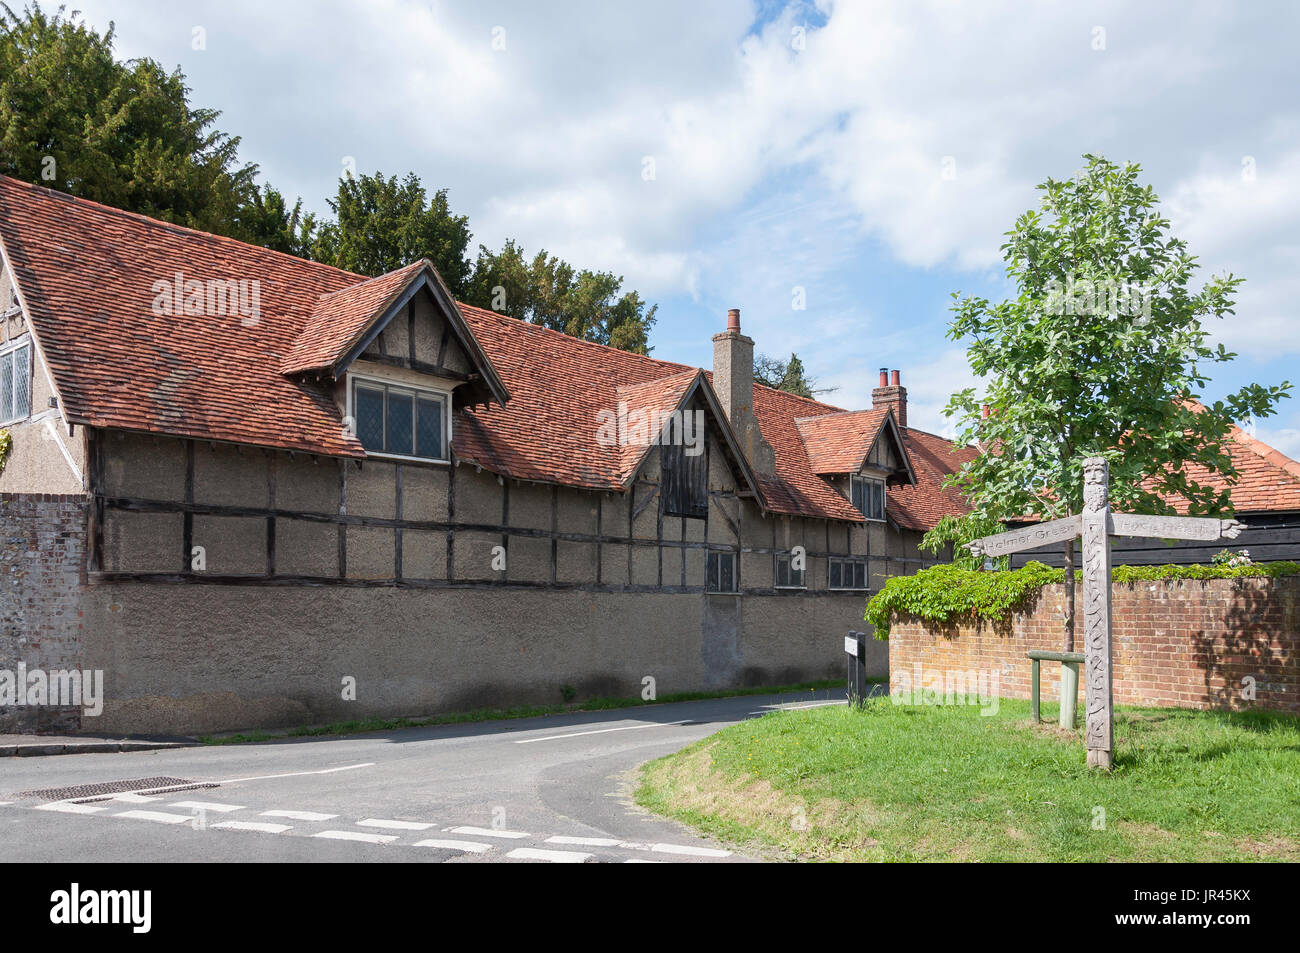 Ancient barn and wooden sign post, Taylors Lane, Little Missenden, Buckinghamshire, England, United Kingdom - Stock Image